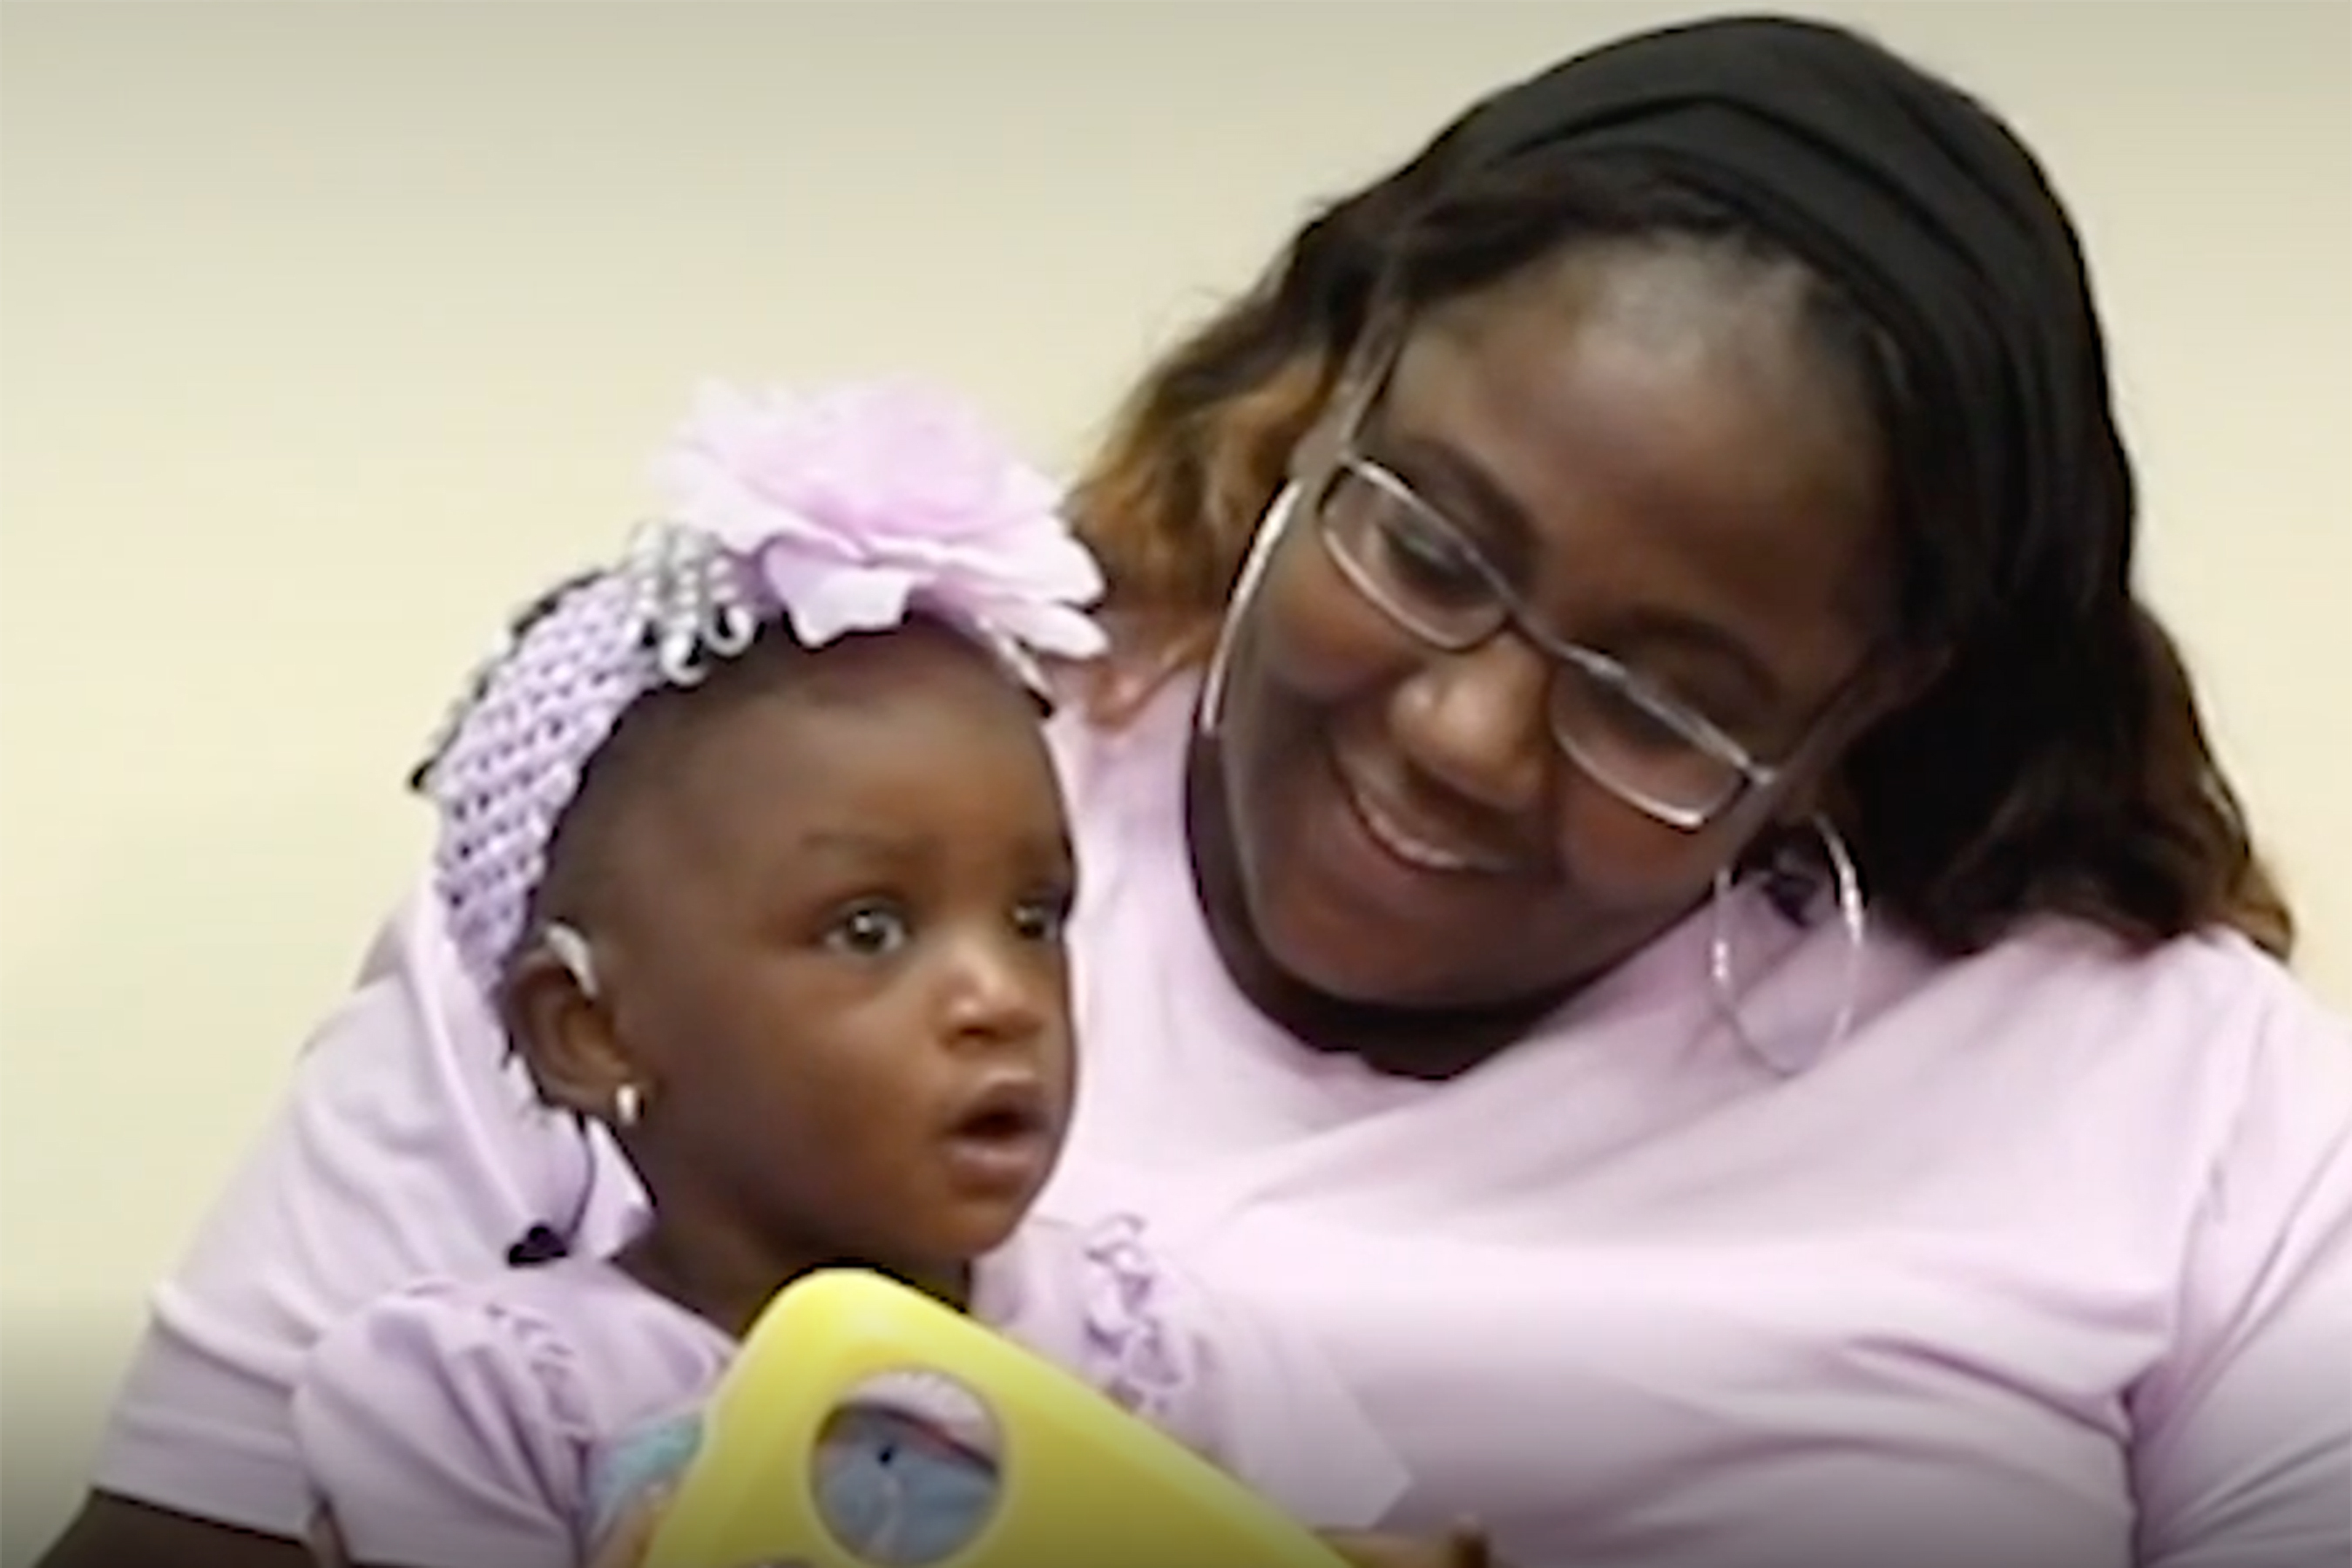 Deaf Toddler Hears Her Mom Say 'I Love You' for the First Time After Getting Cochlear Implants